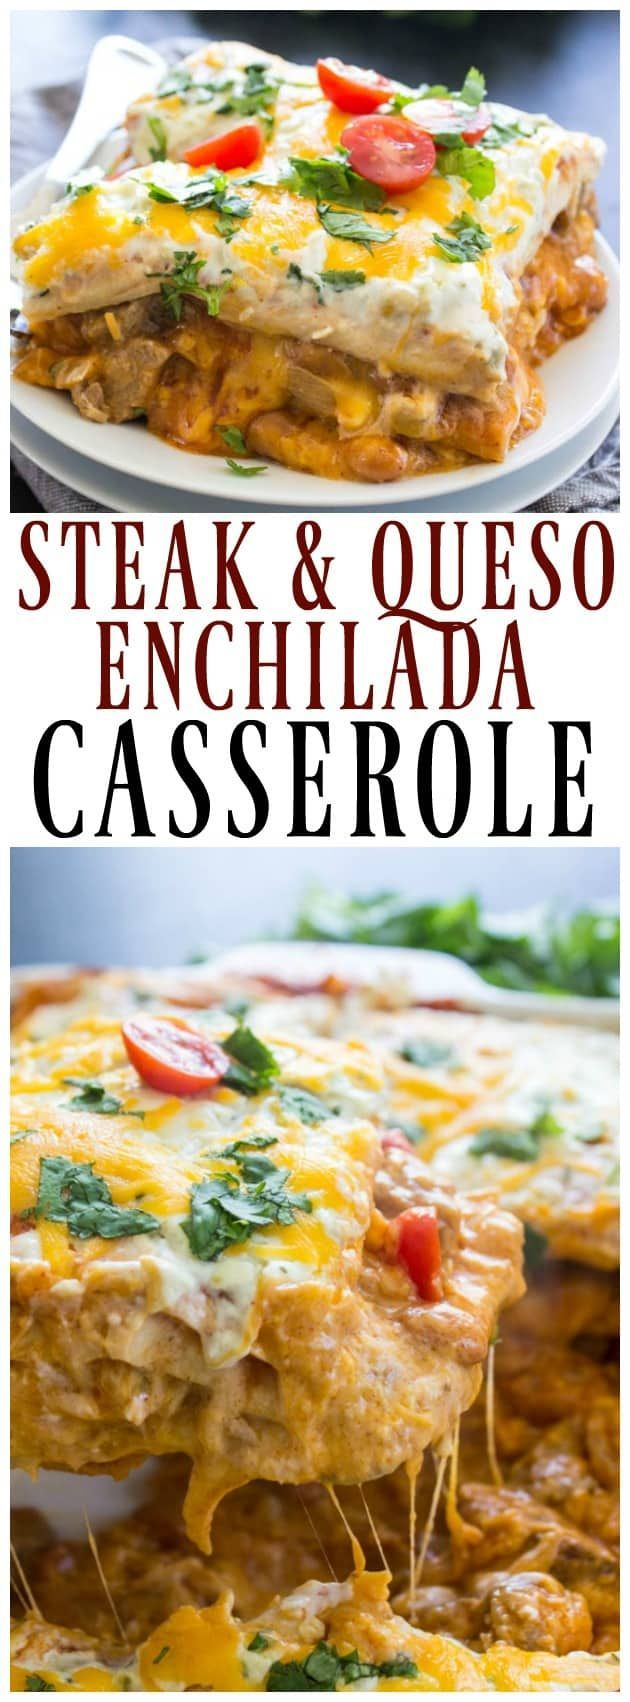 STEAK AND QUESO ENCHILADA CASSEROLE – an easy dinner for the holidays and great for gatherings. This cheesy casserole is baked to perfection. #ad #steak #casserole #enchiladas #cheese #Queso #EasyDinner #dinner